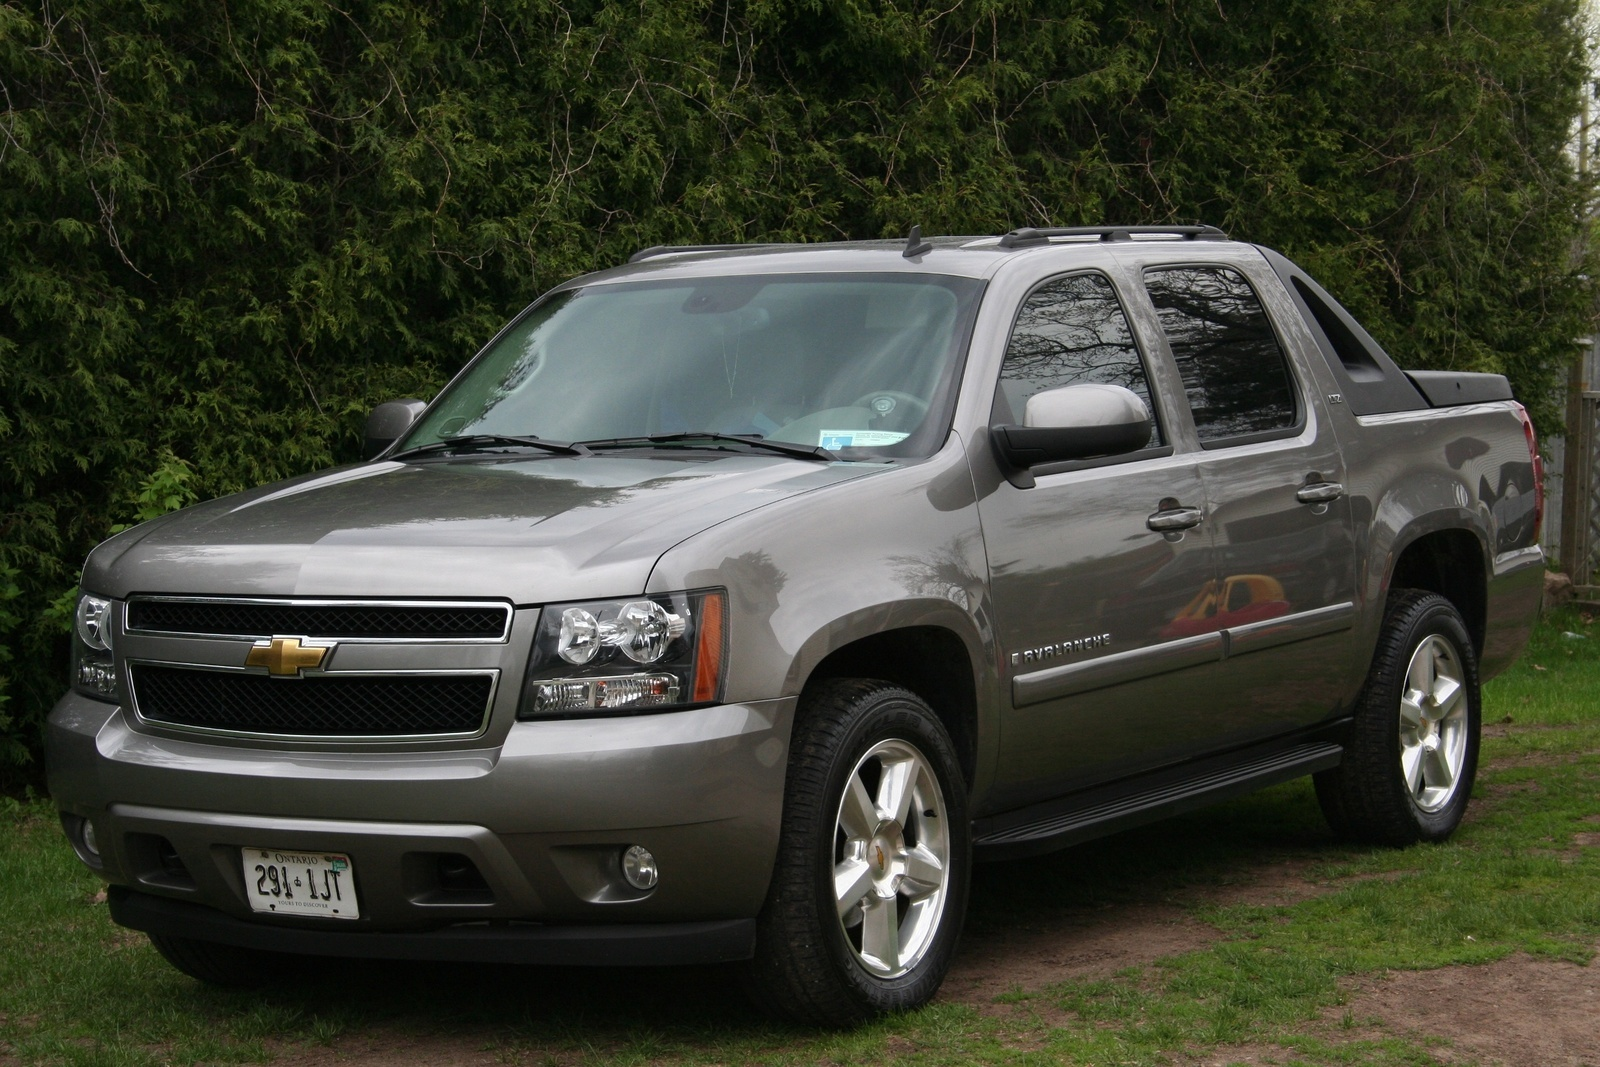 chevrolet avalanche questions mpg on this truck cargurus. Black Bedroom Furniture Sets. Home Design Ideas